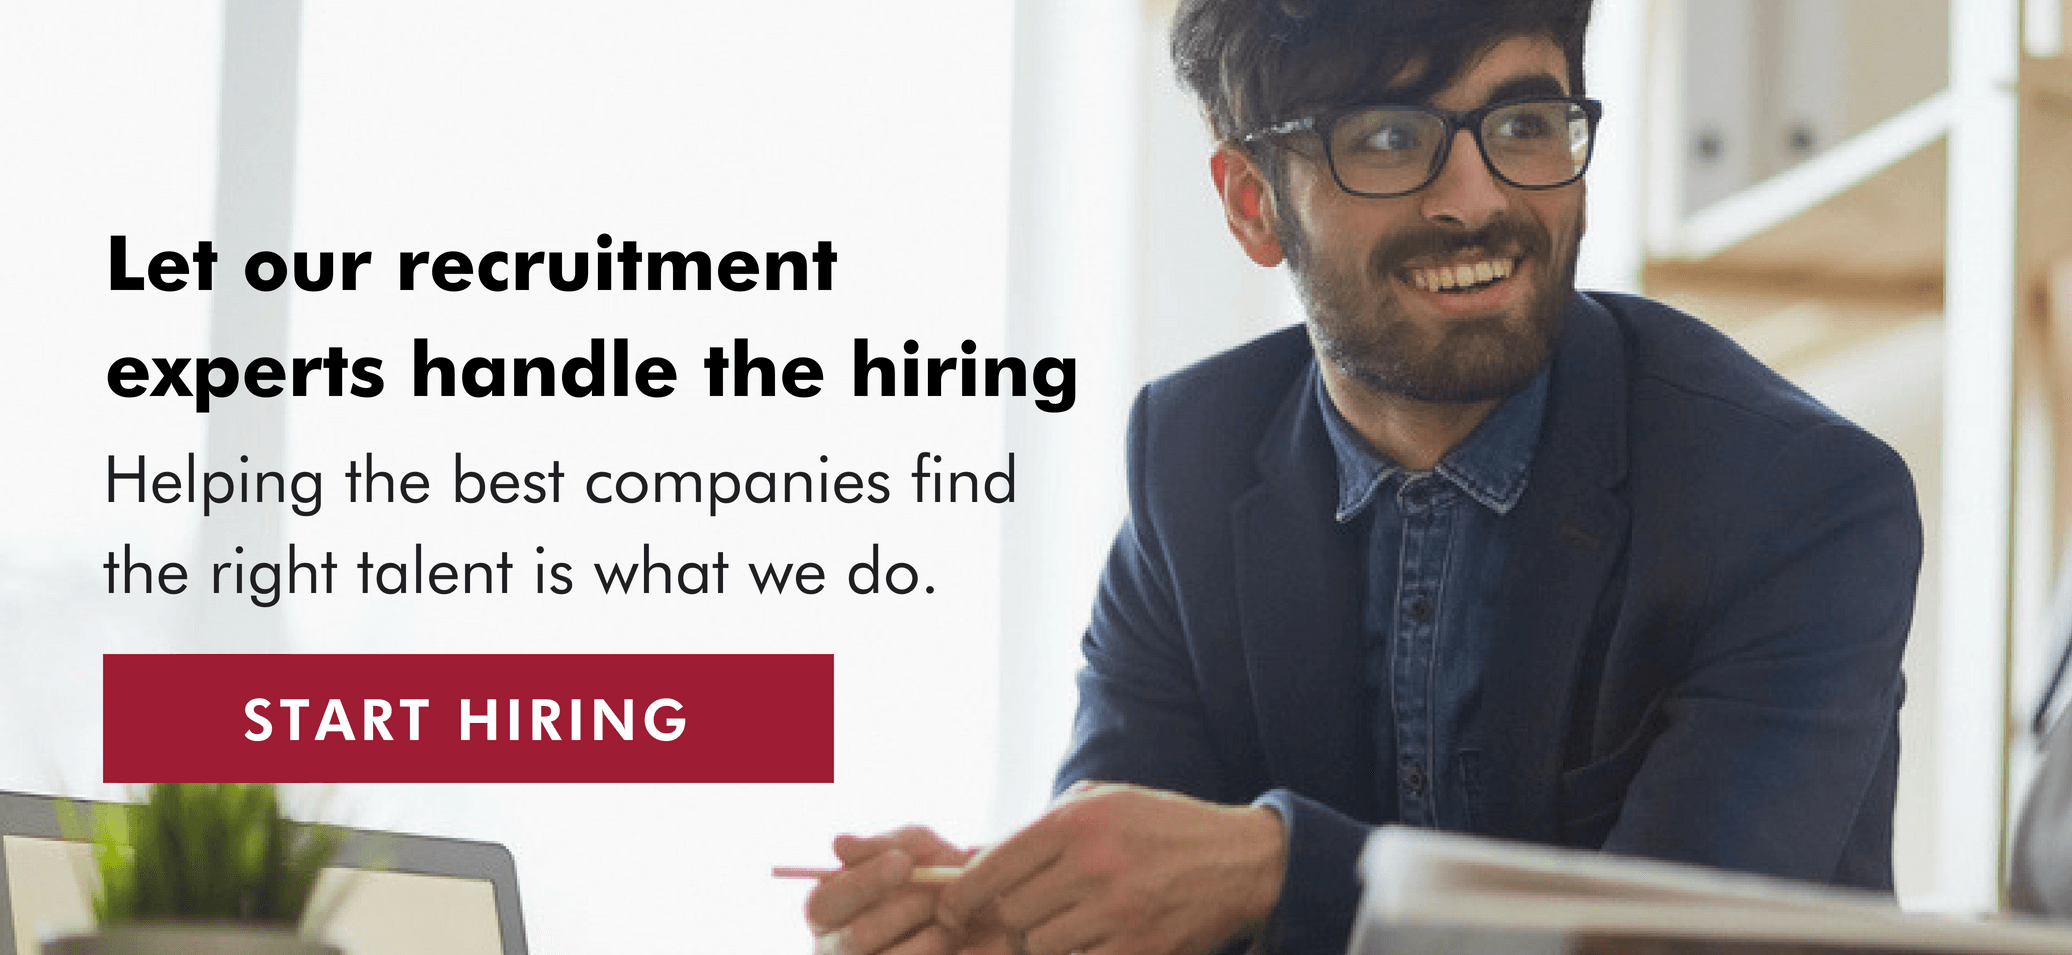 Let our experts handle the hiring - Start Hiring